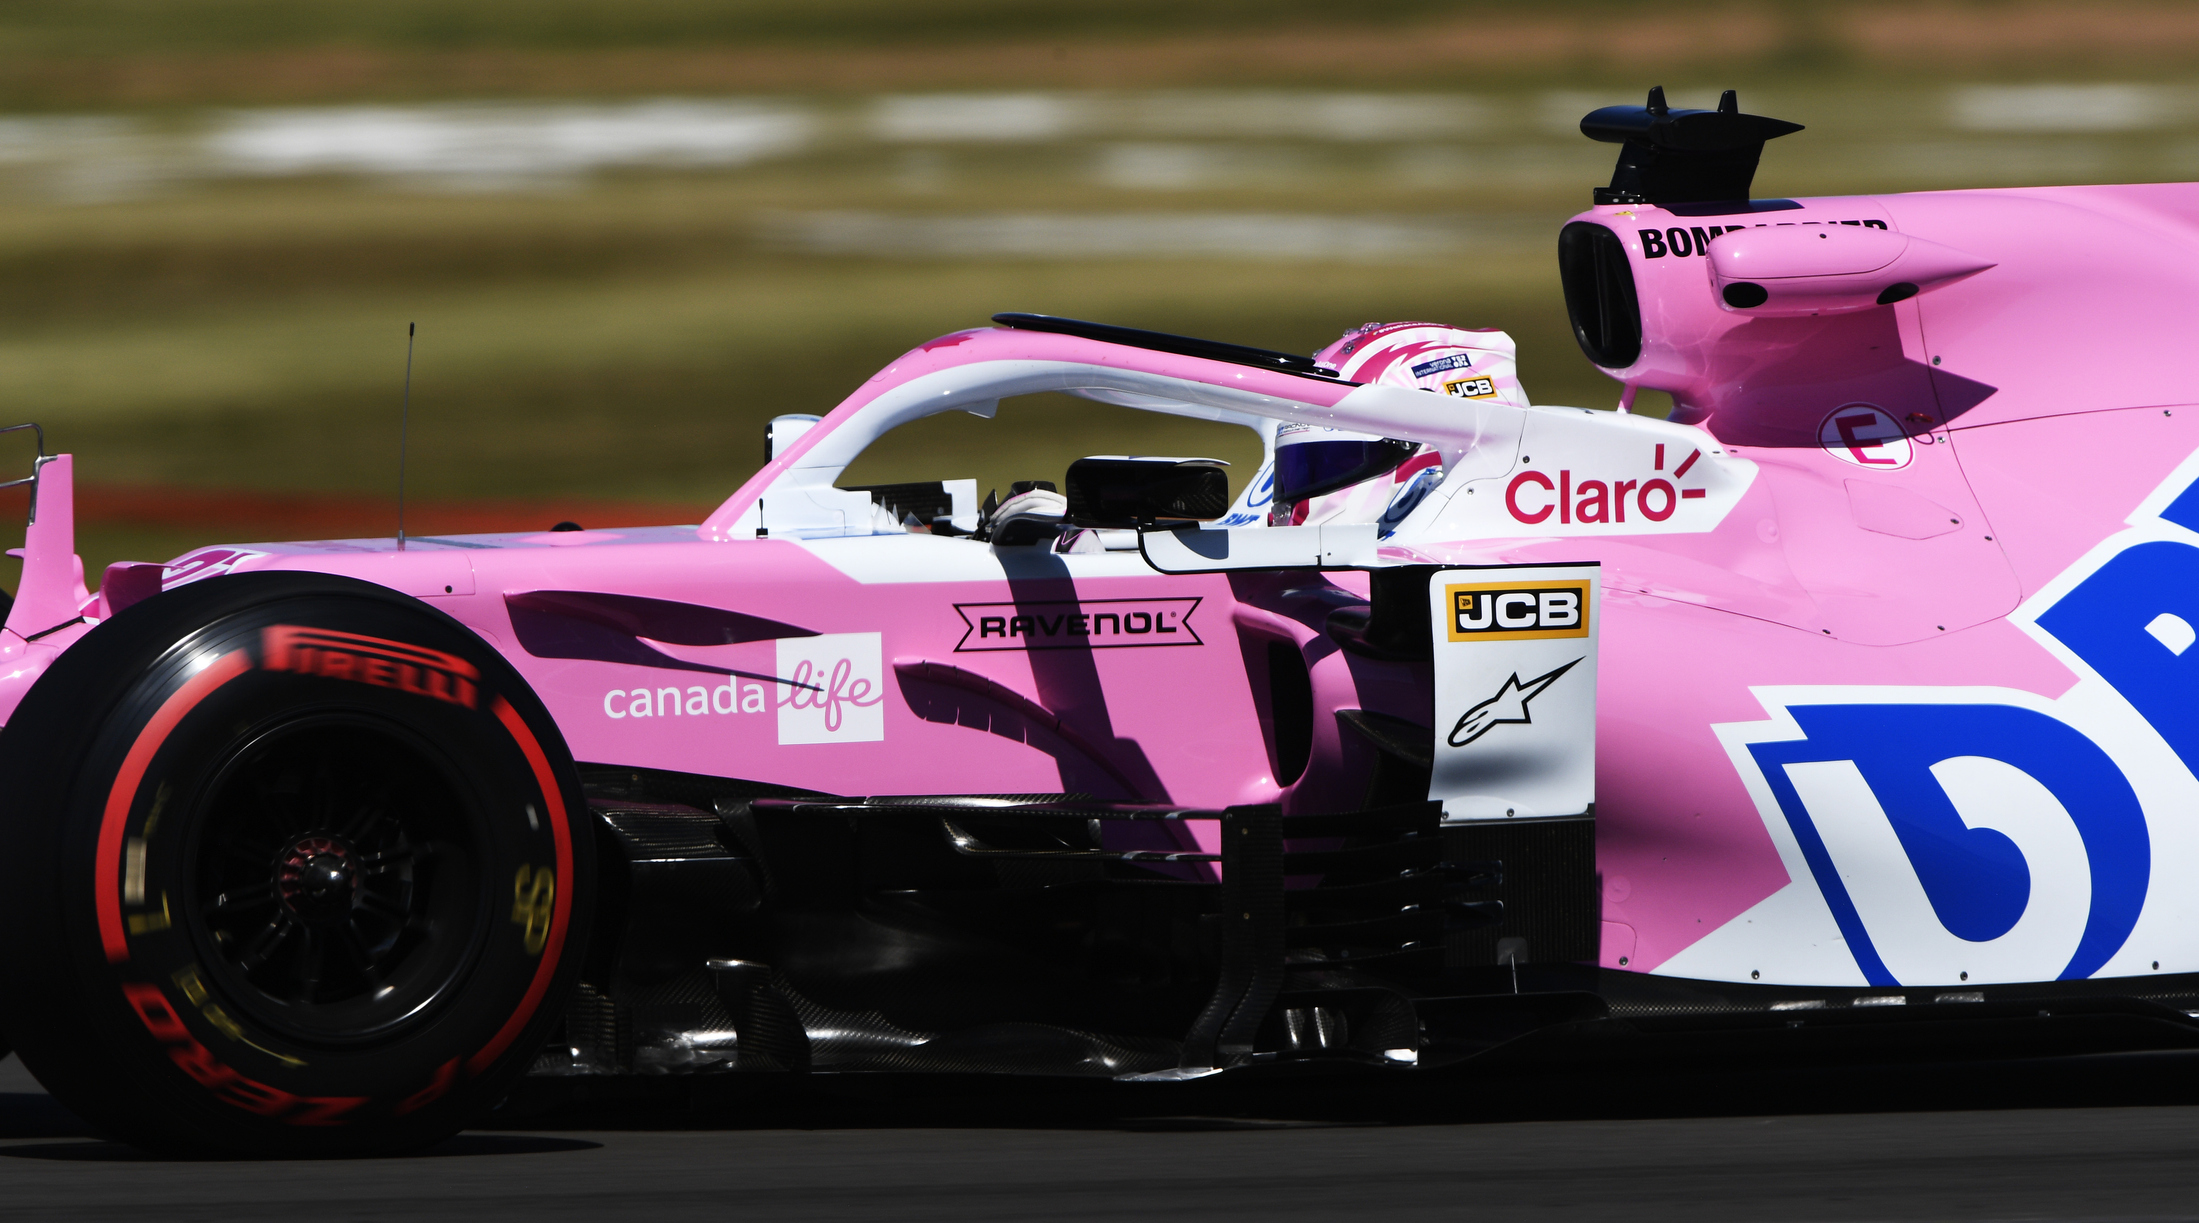 Fia To Amend 2021 Regulations To Prevent Car Copying Following Racing Point Case Formula 1